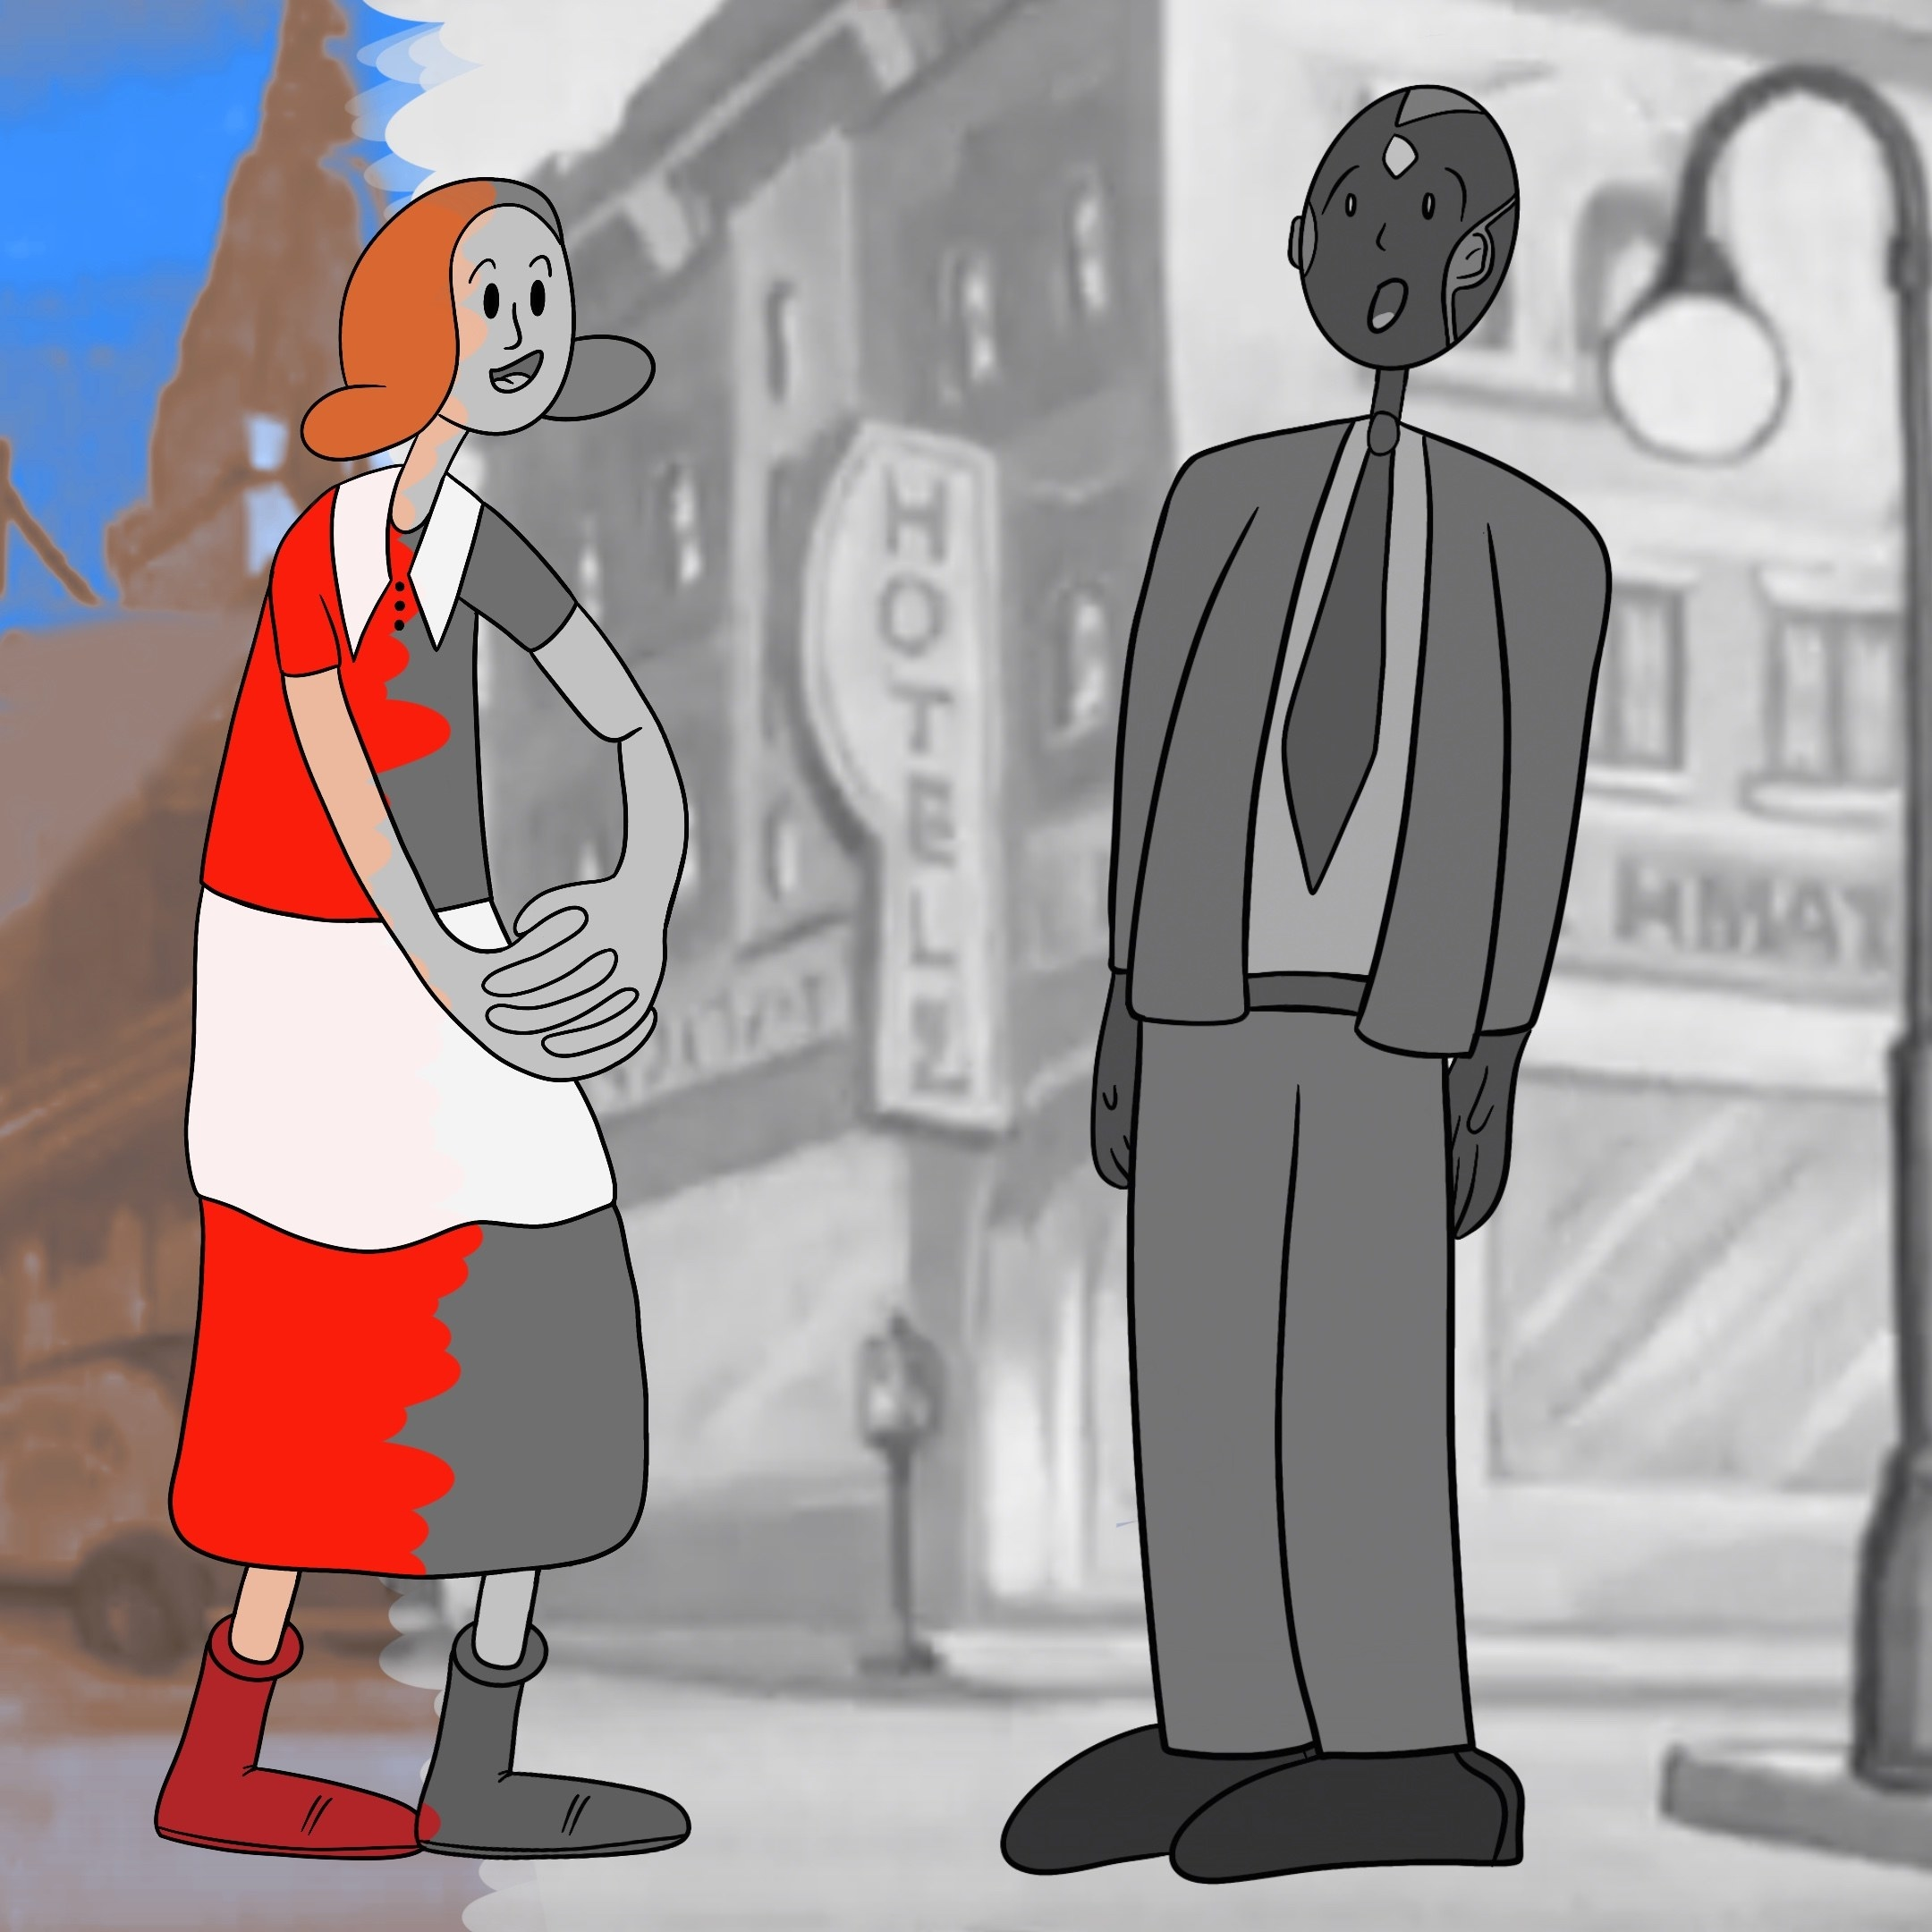 Wanda and Vision stand in a partially black and white, partially colored town